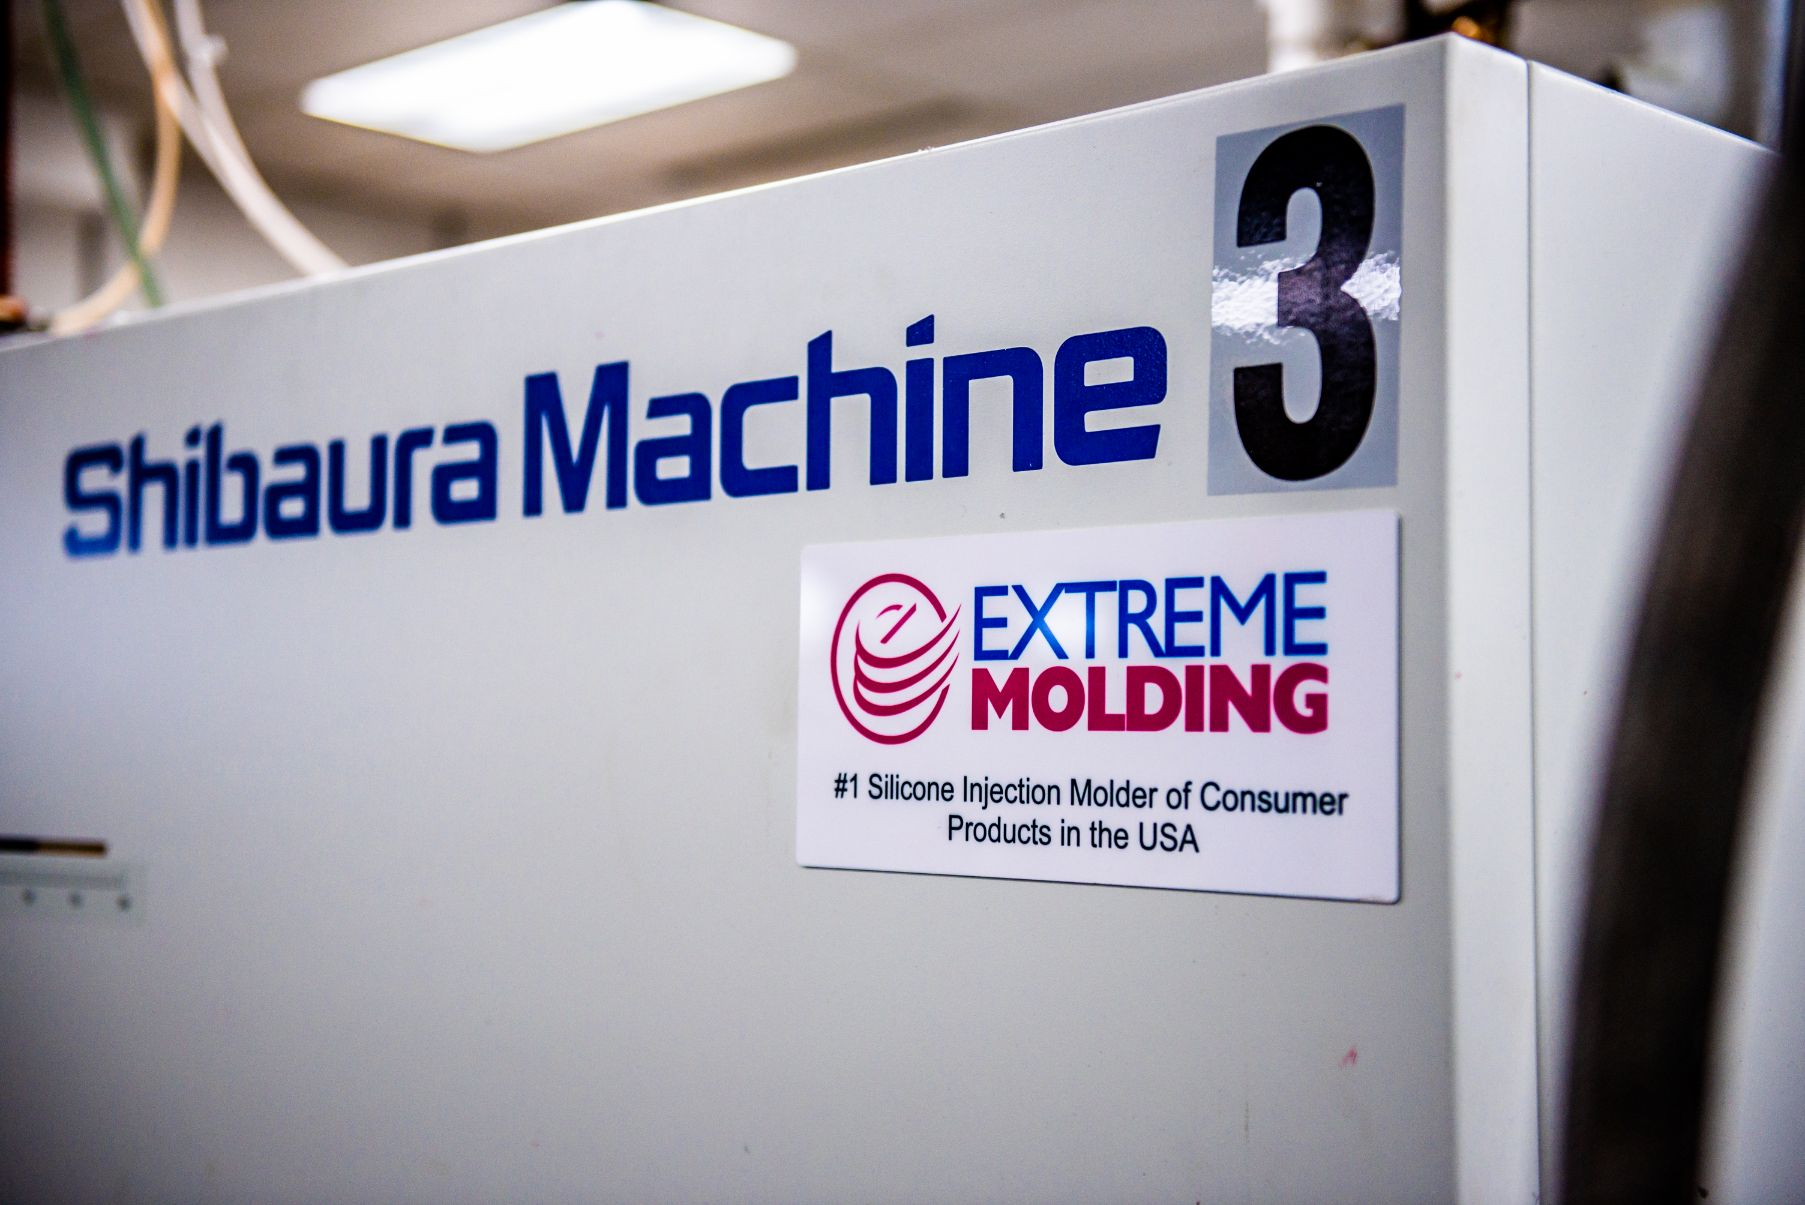 Shibaura Machine at Extreme Molding in Watervliet NY